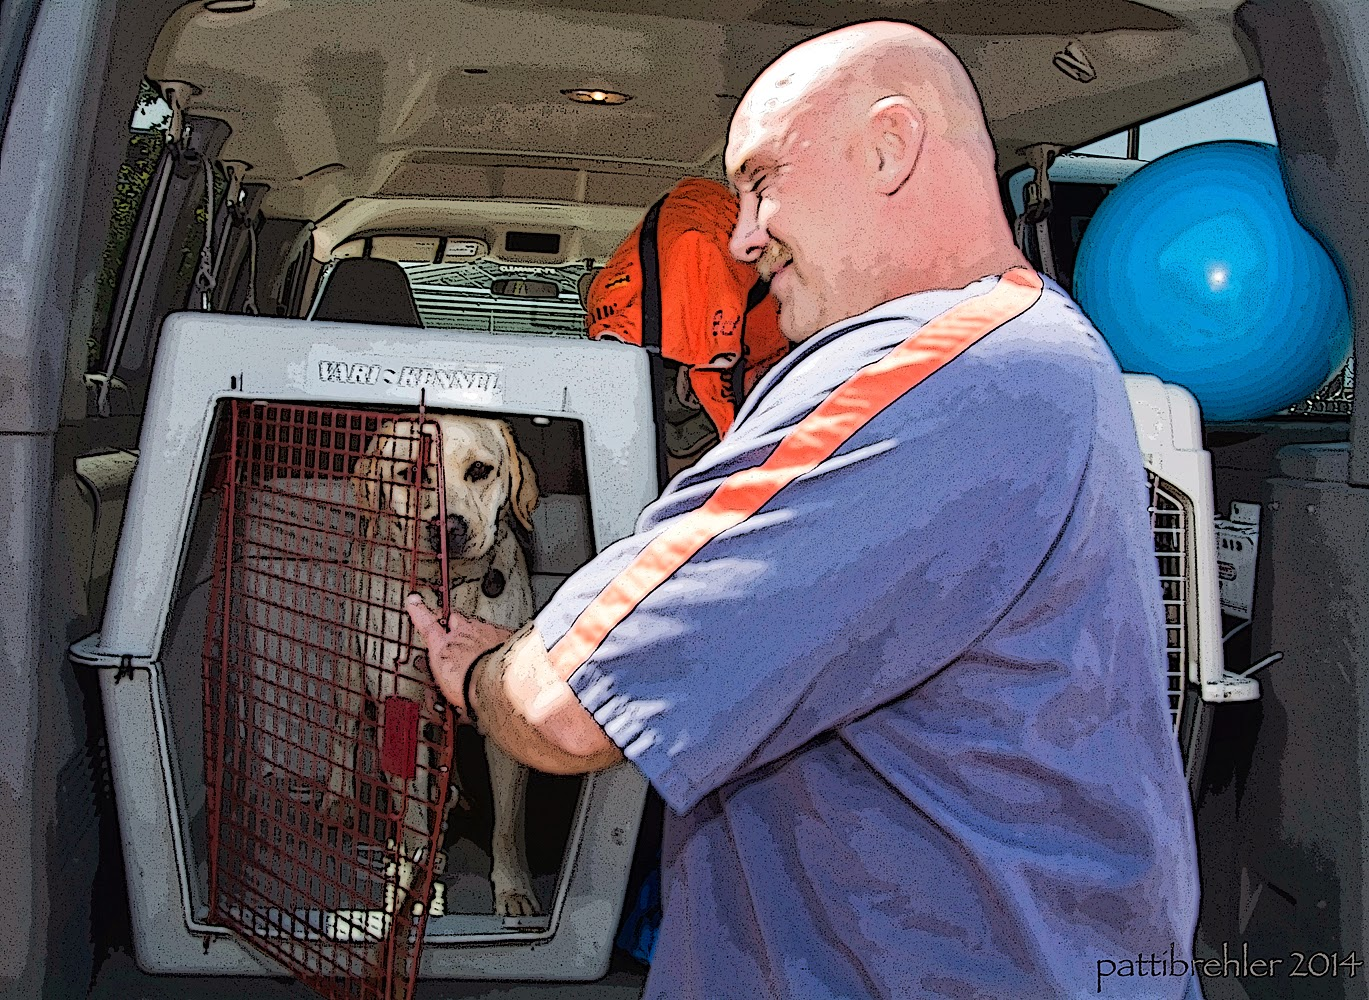 A man dressed in a blue prison shirt is reaching into an airline crate that is sitting in the back of a van. There is a yellow lab inside the crate looking out at the camera. The man is looking at the dog. There is a blue ball in the van on the right side.